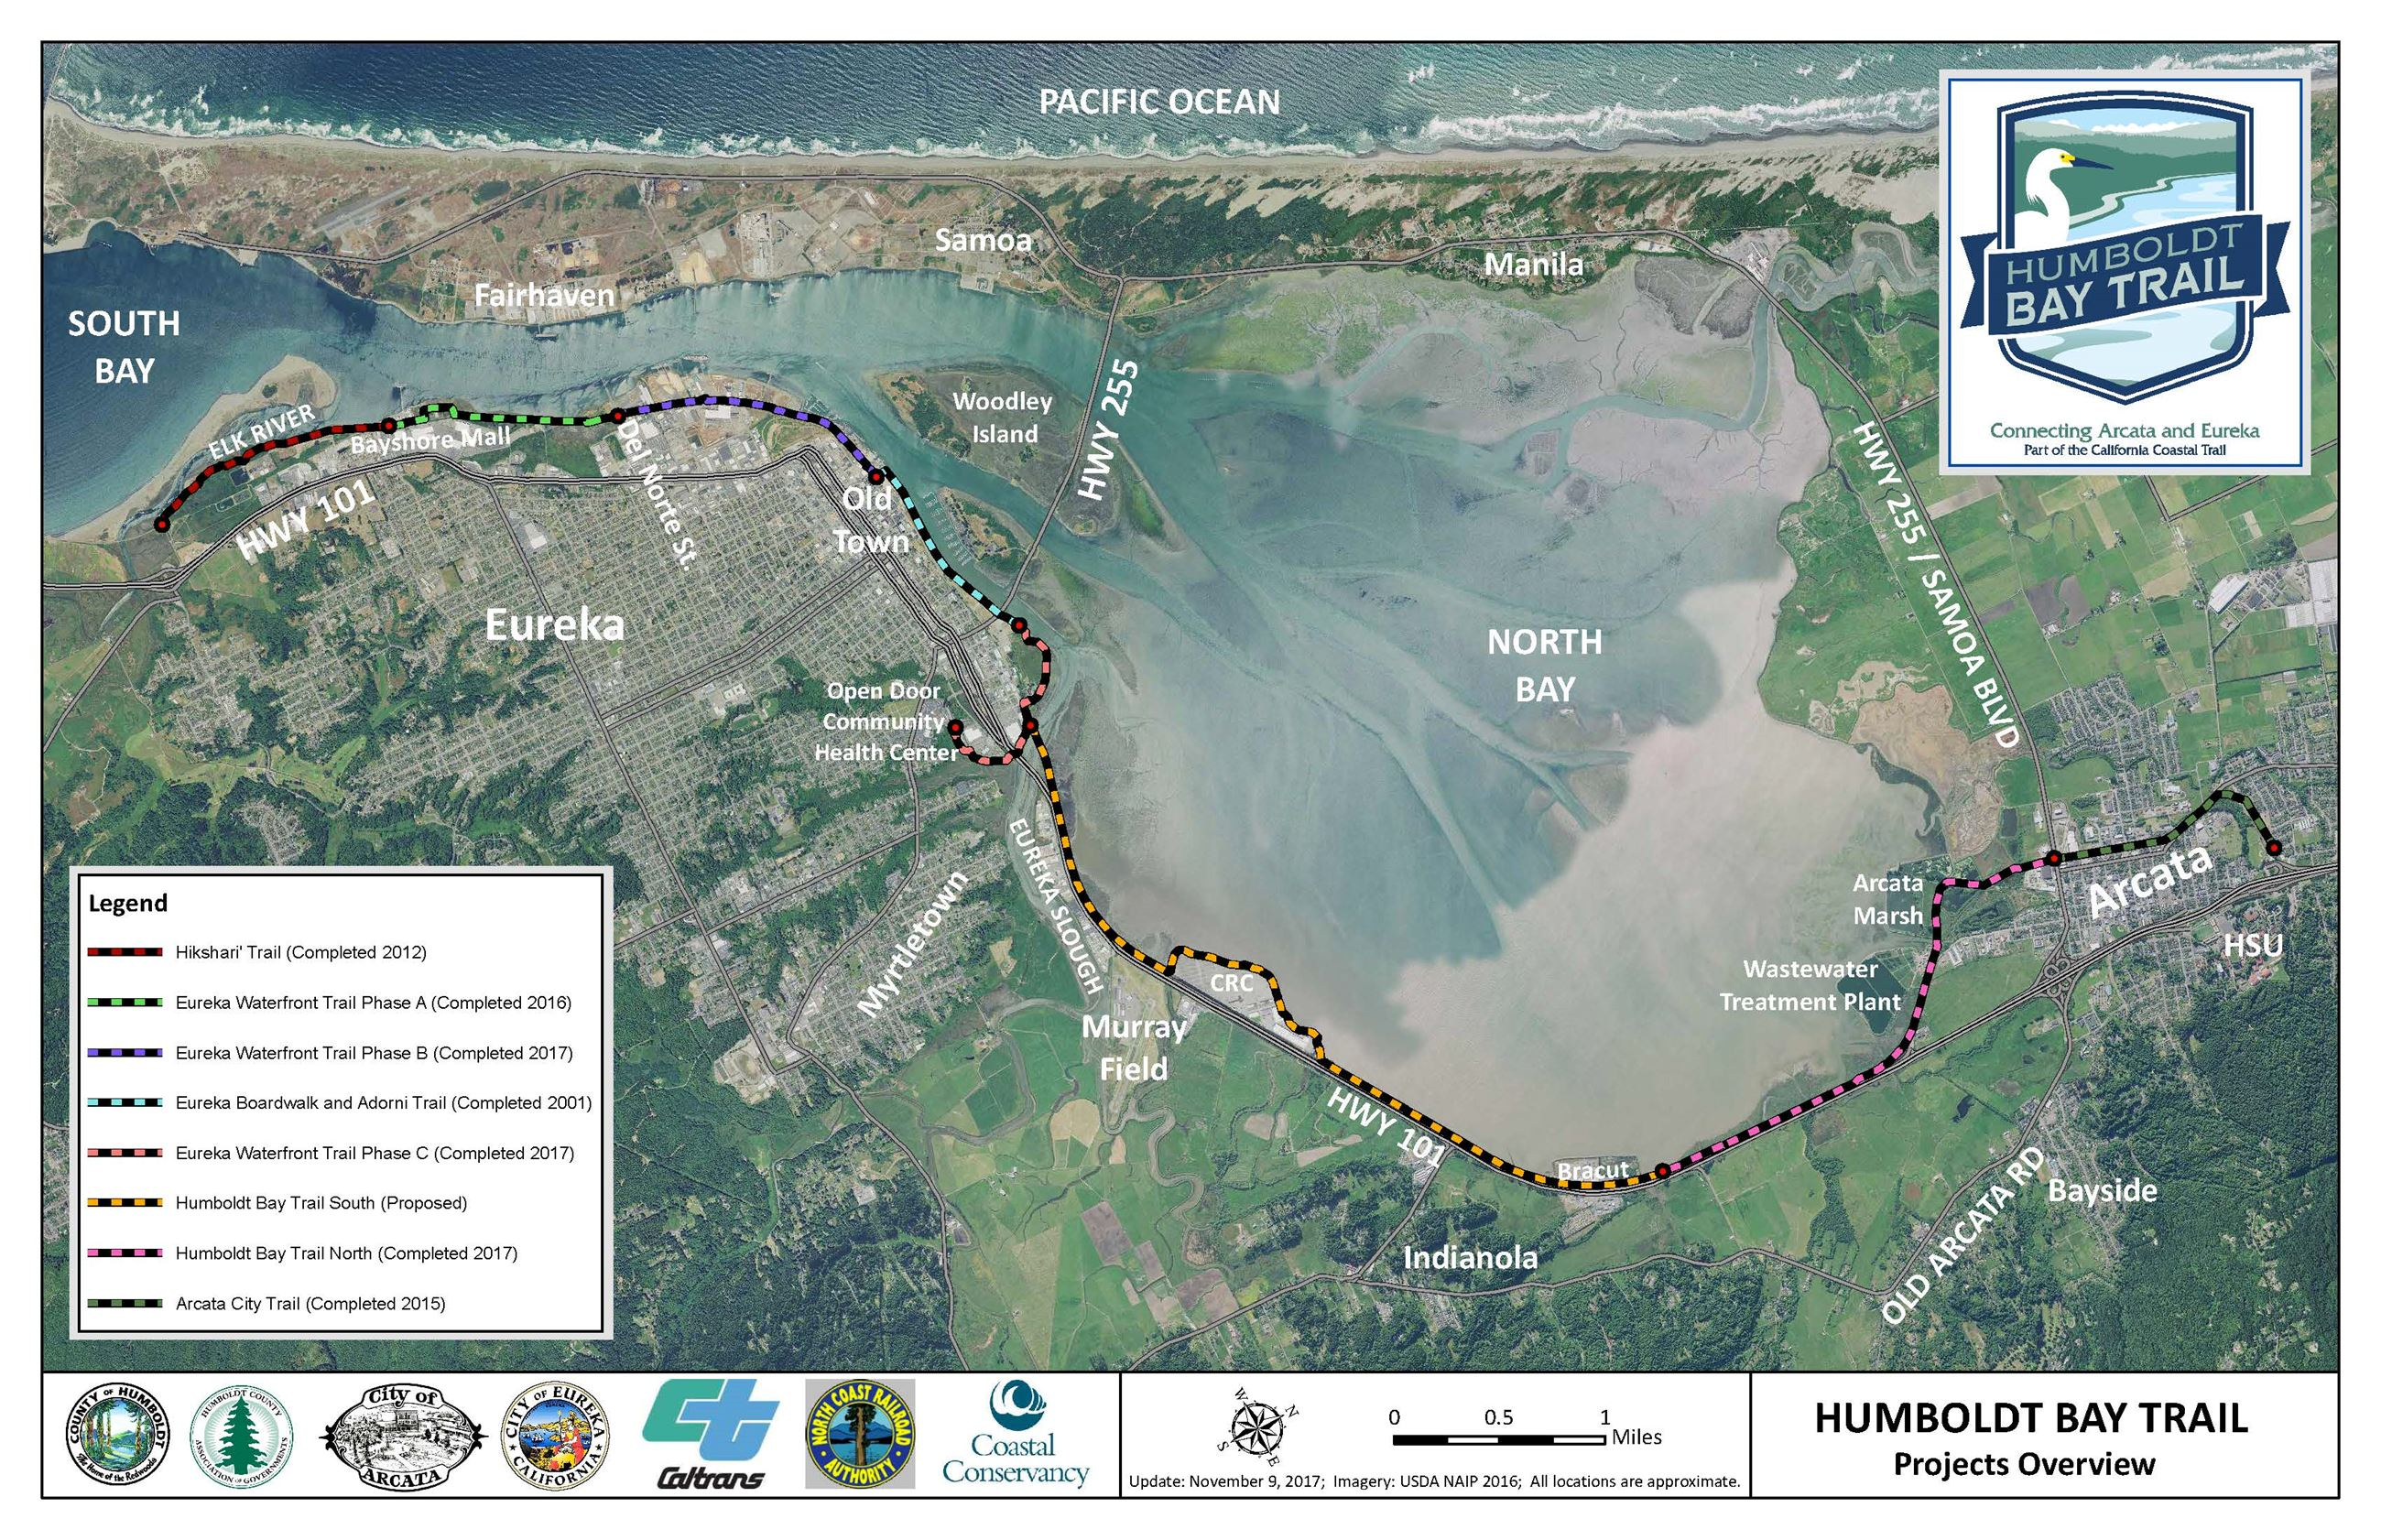 Humboldt Bay Trail | Humboldt County, CA - Official Website